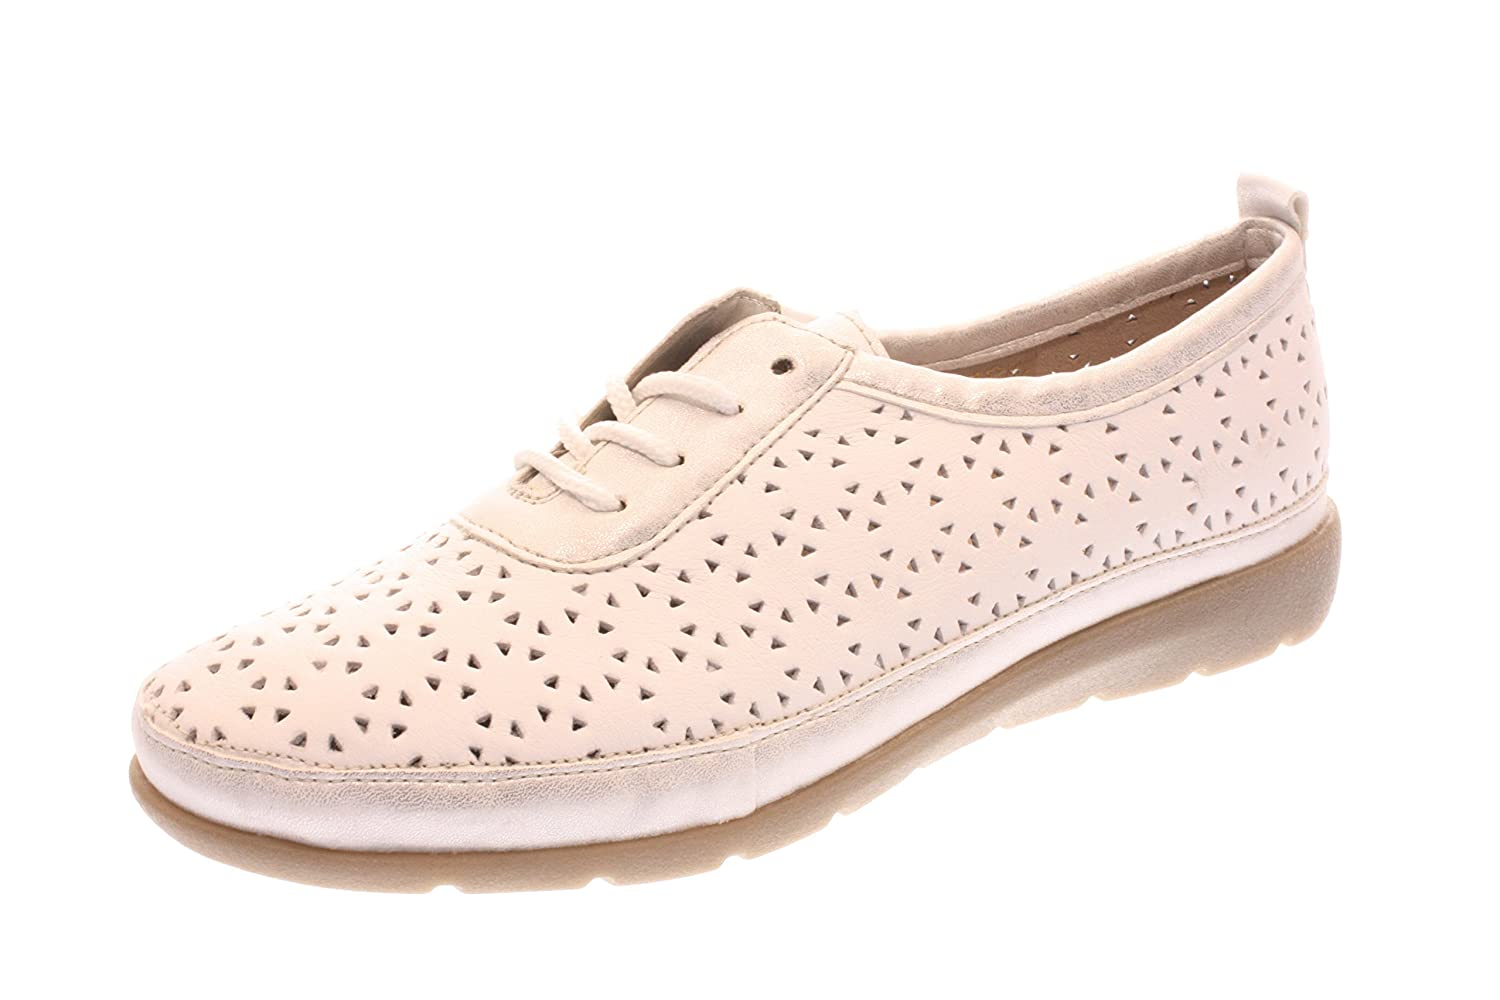 Mujeres Zapatos con cordones ice/weiss blanco, (ICE/WEISS) D190480 36 EU